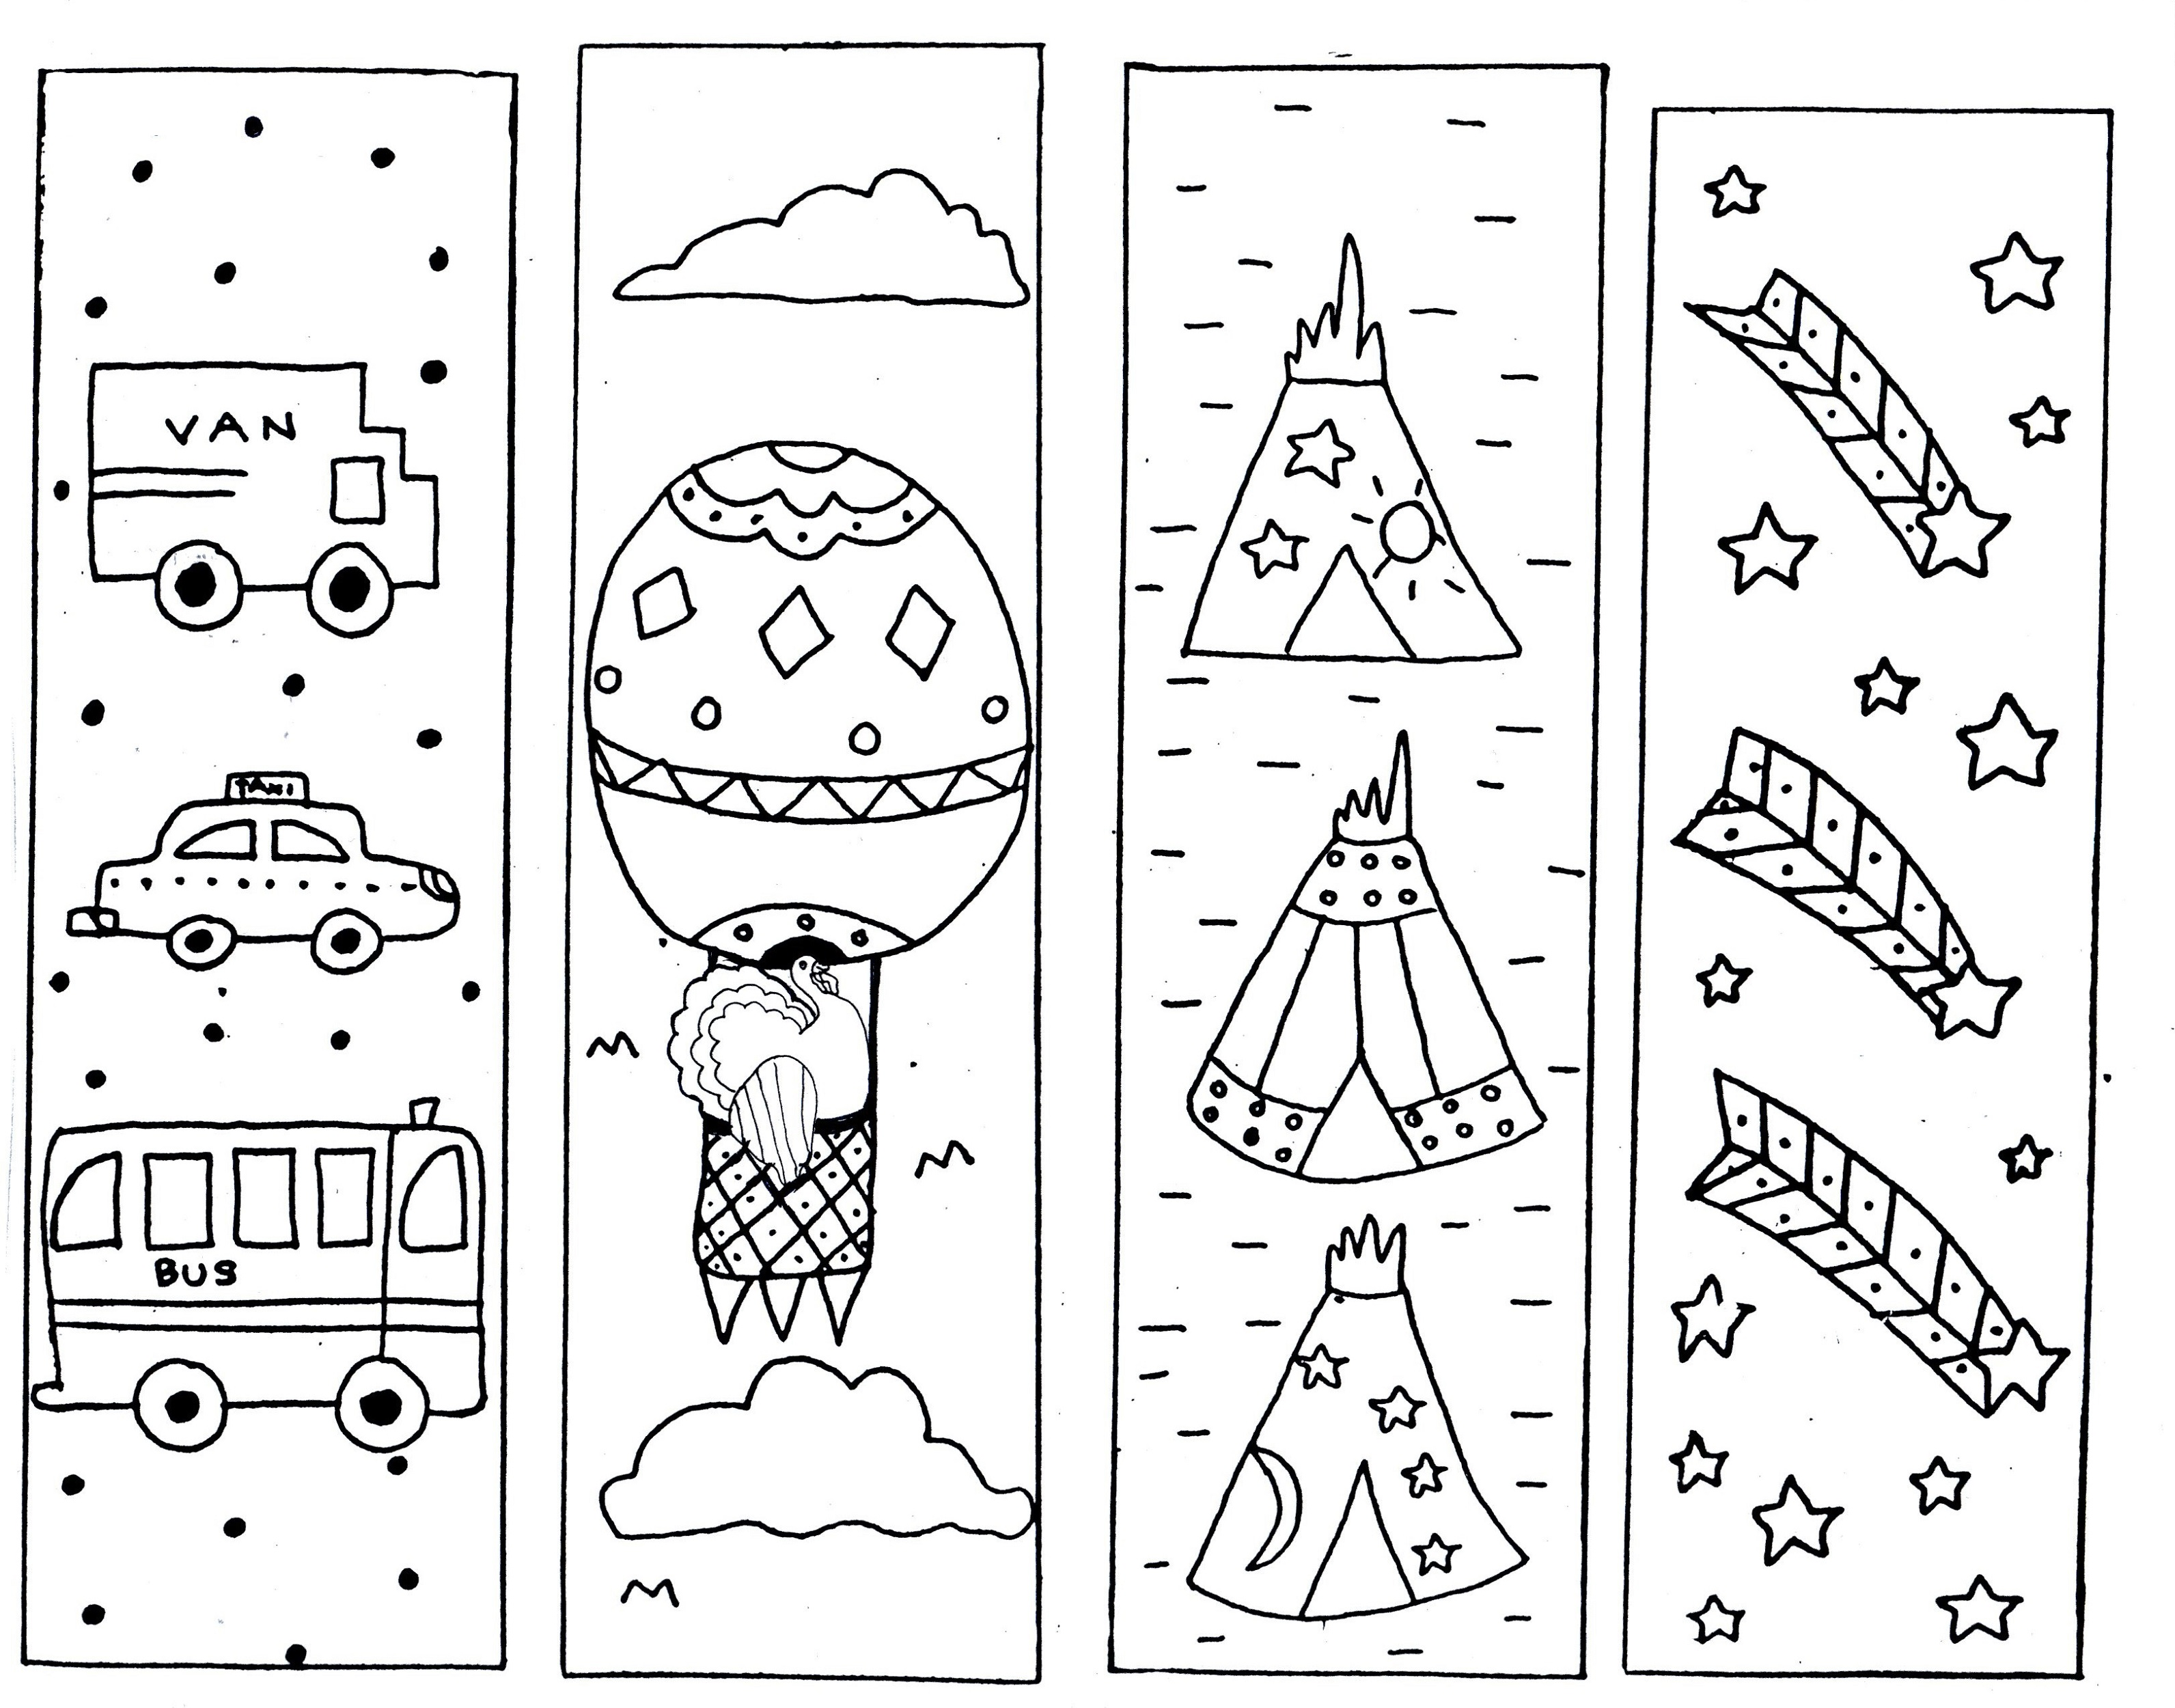 Printable Coloring Bookmarks Free : Printable bookmarks for kids activity shelter